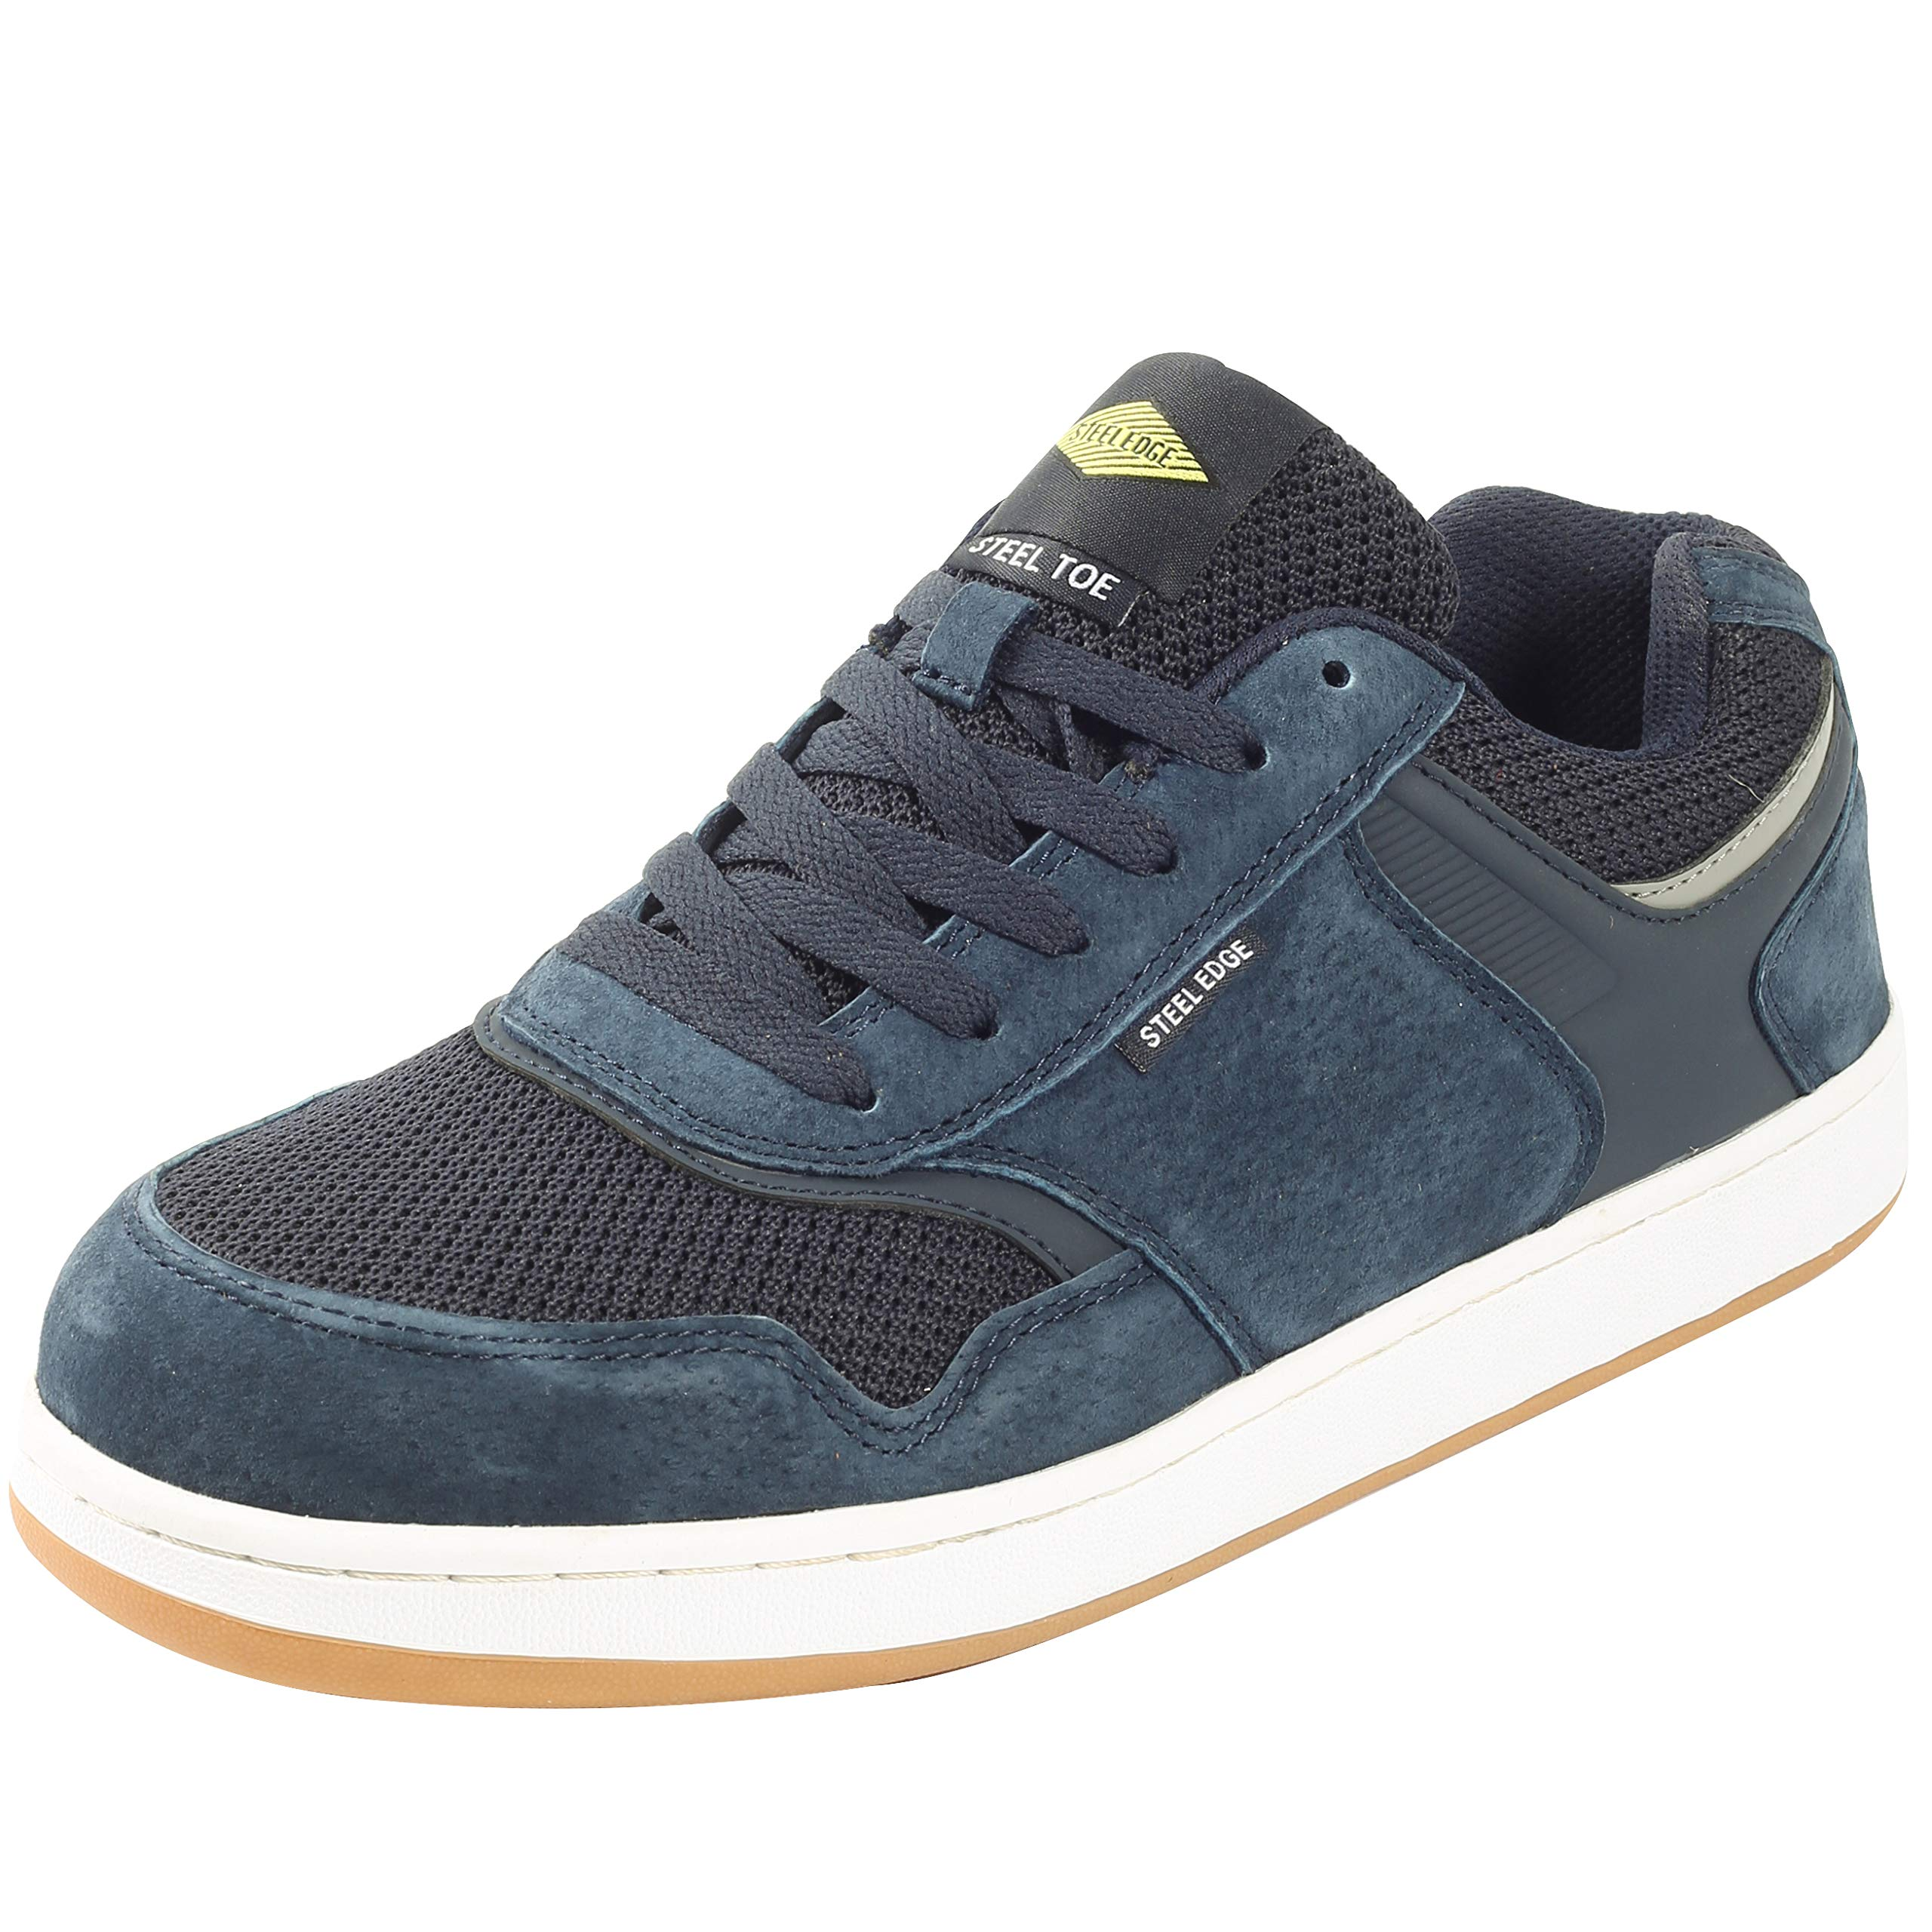 Safety Toe Athletic Shoes - Skater Style, Steel Toe Shoe Sneakers (9.5, Blue) by Steel Edge